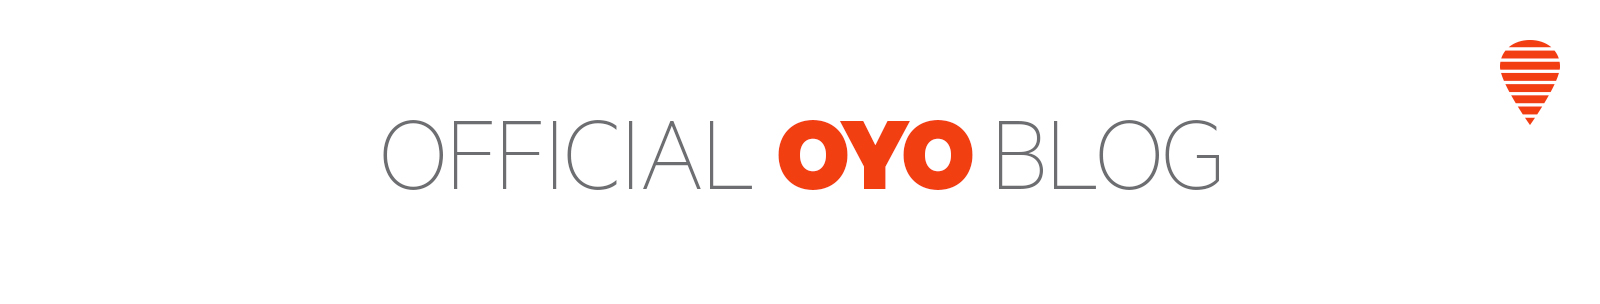 Official OYO Blog